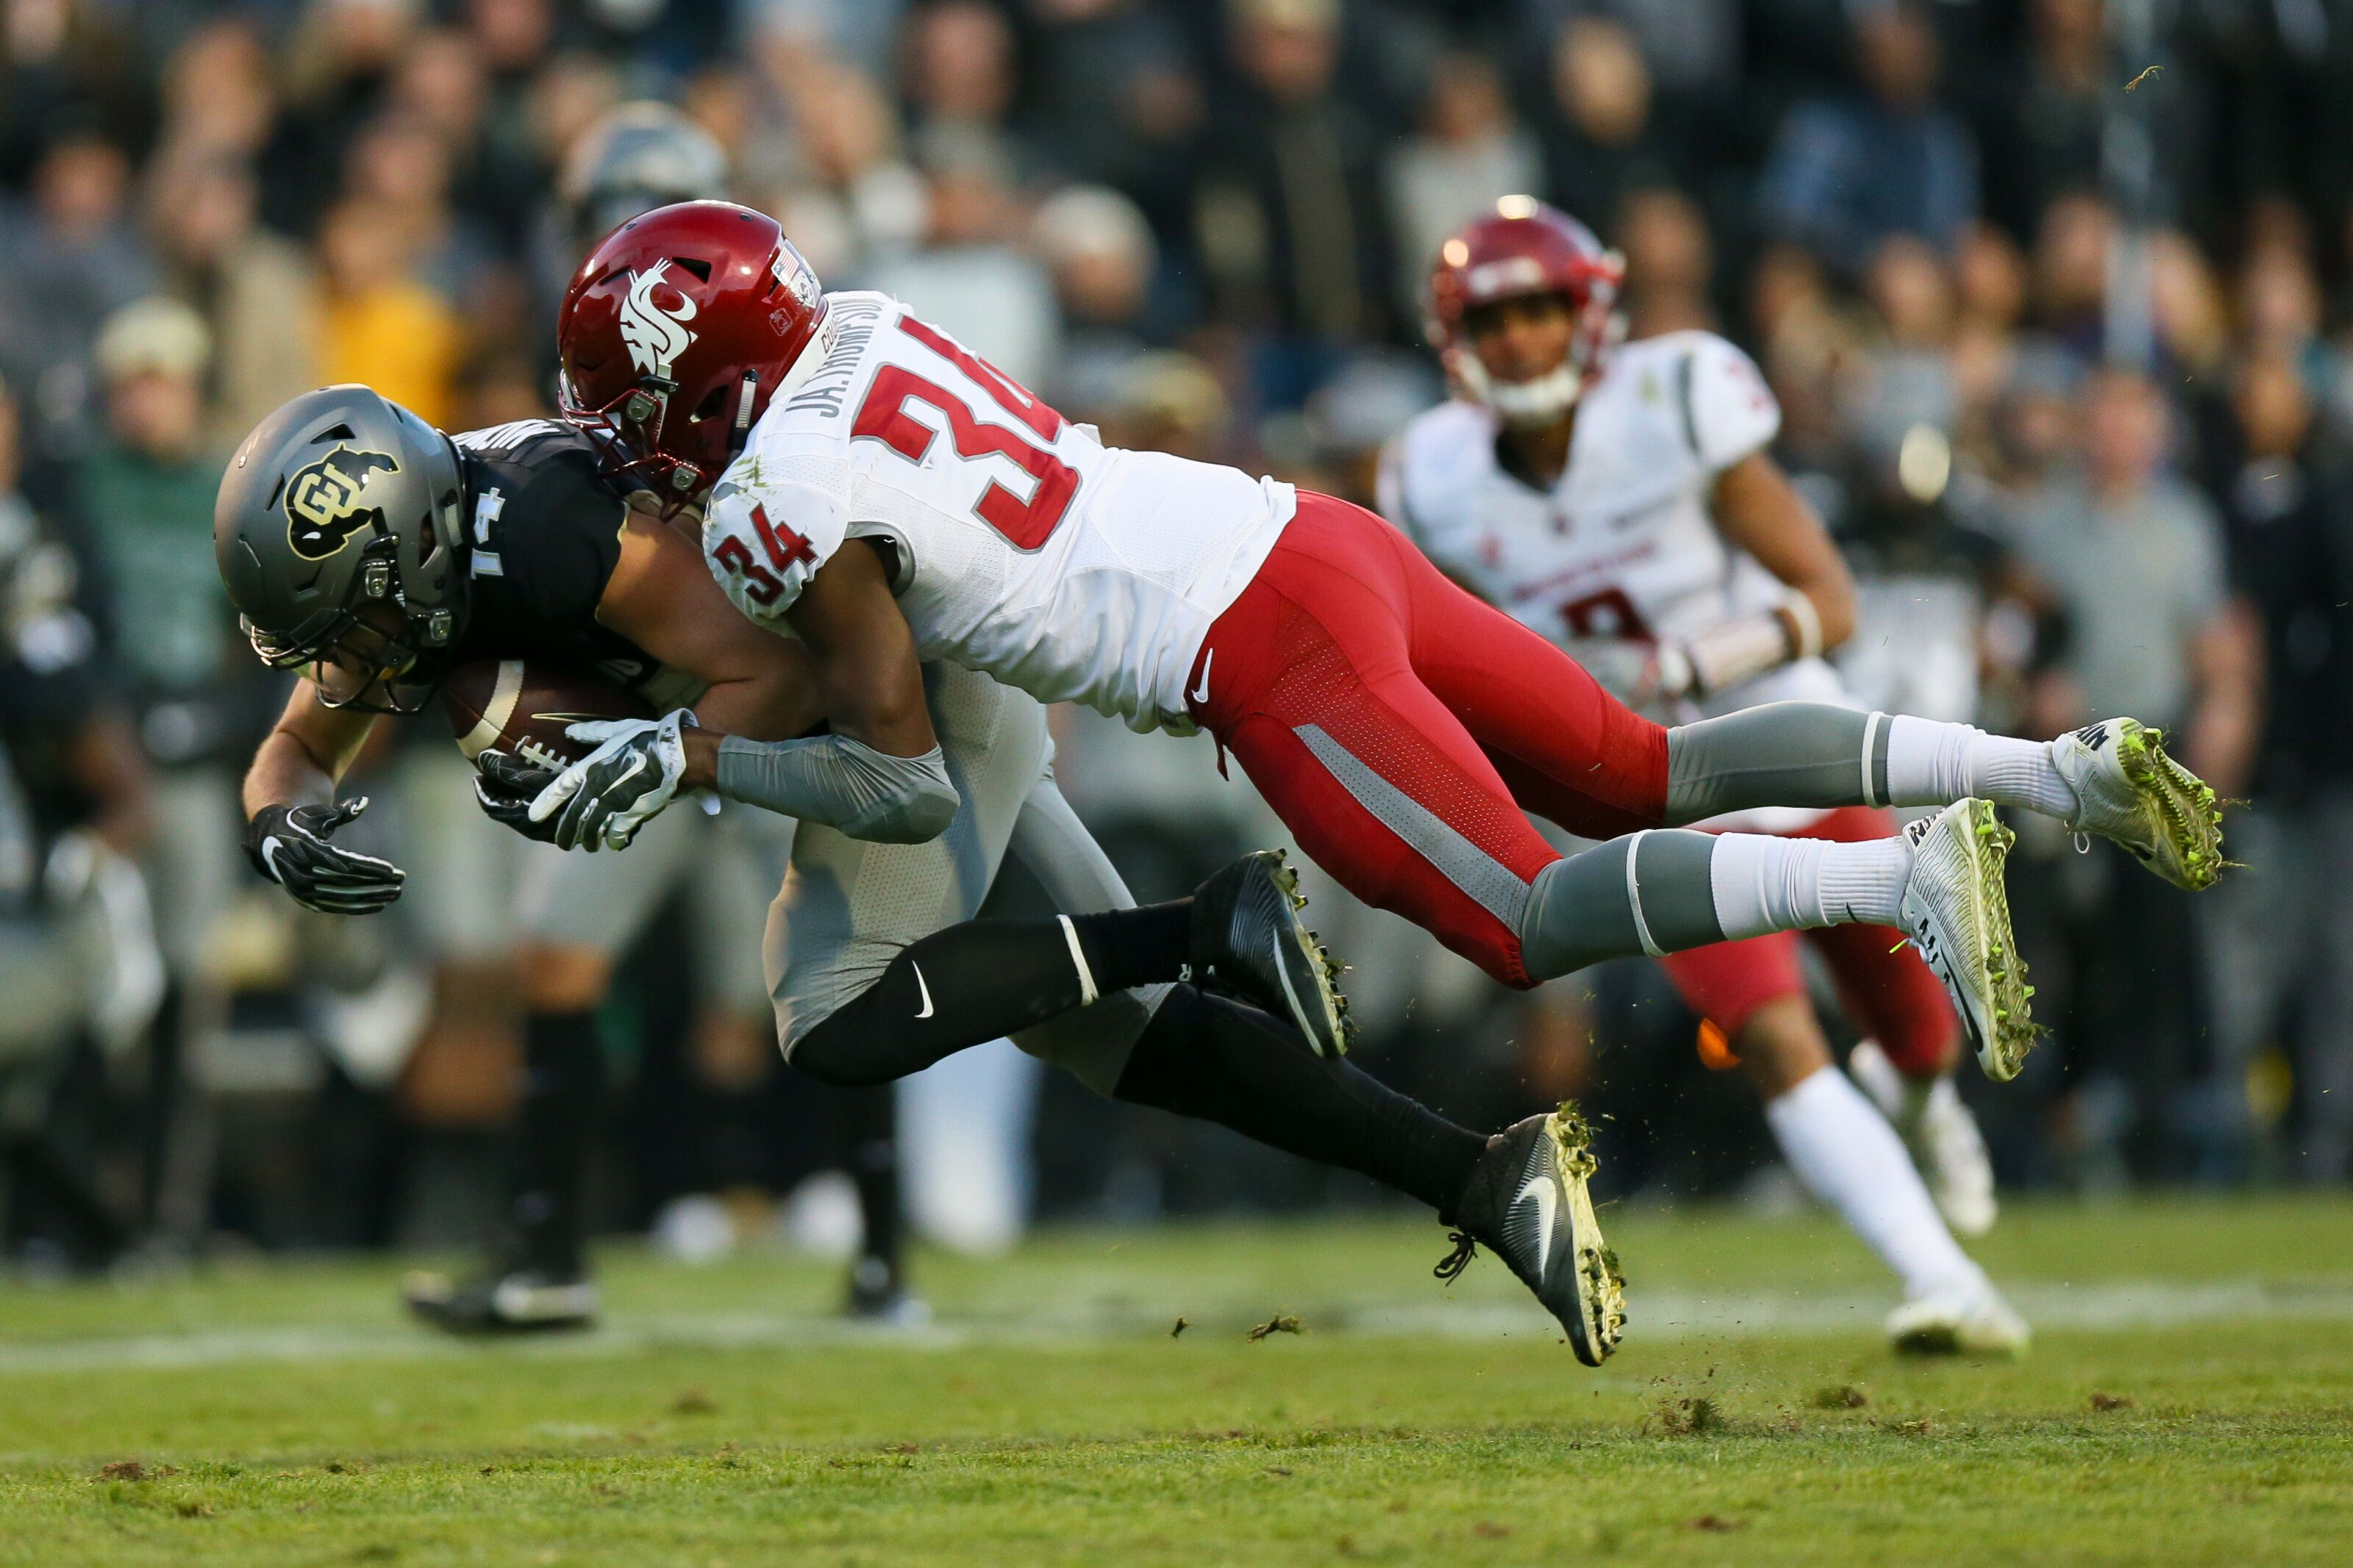 Arizona Cardinals select safety Jalen Thompson in the supplemental draft